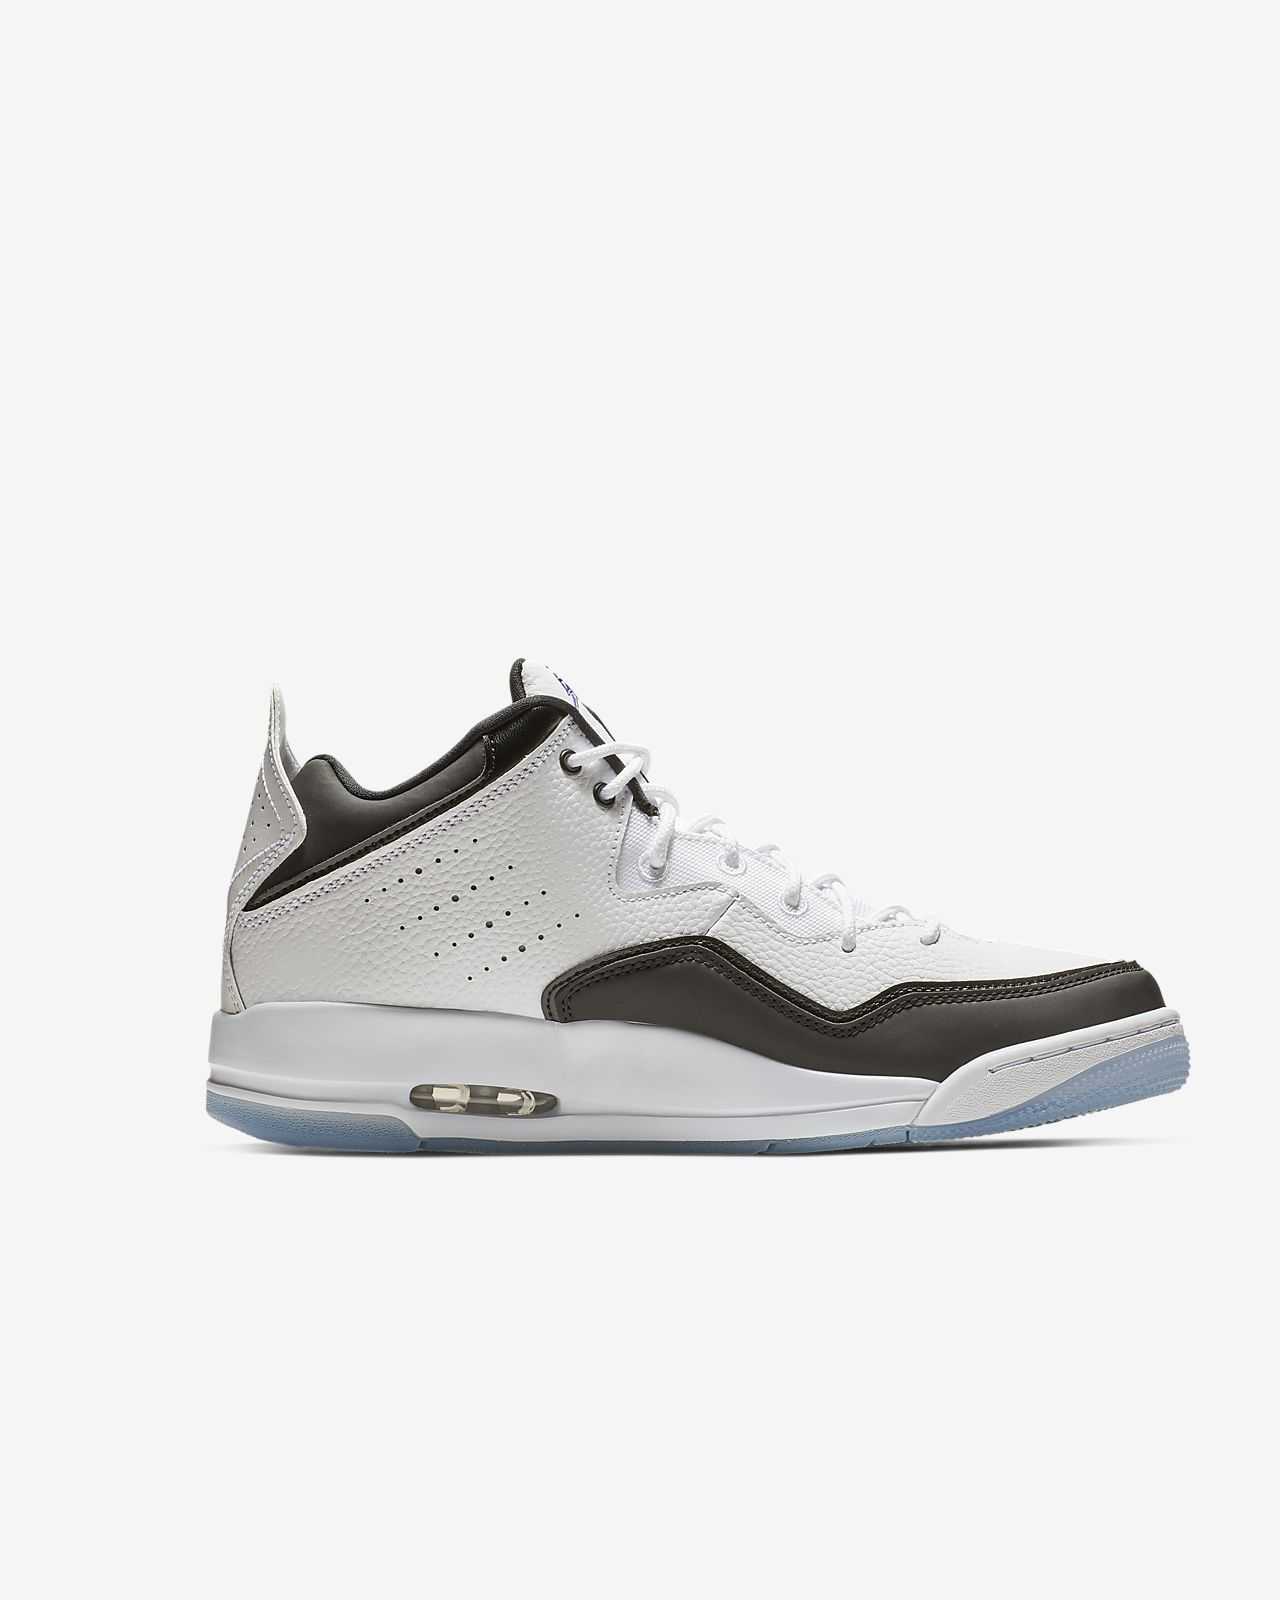 95164c450f26 Jordan Courtside 23 Men s Shoe. Nike.com